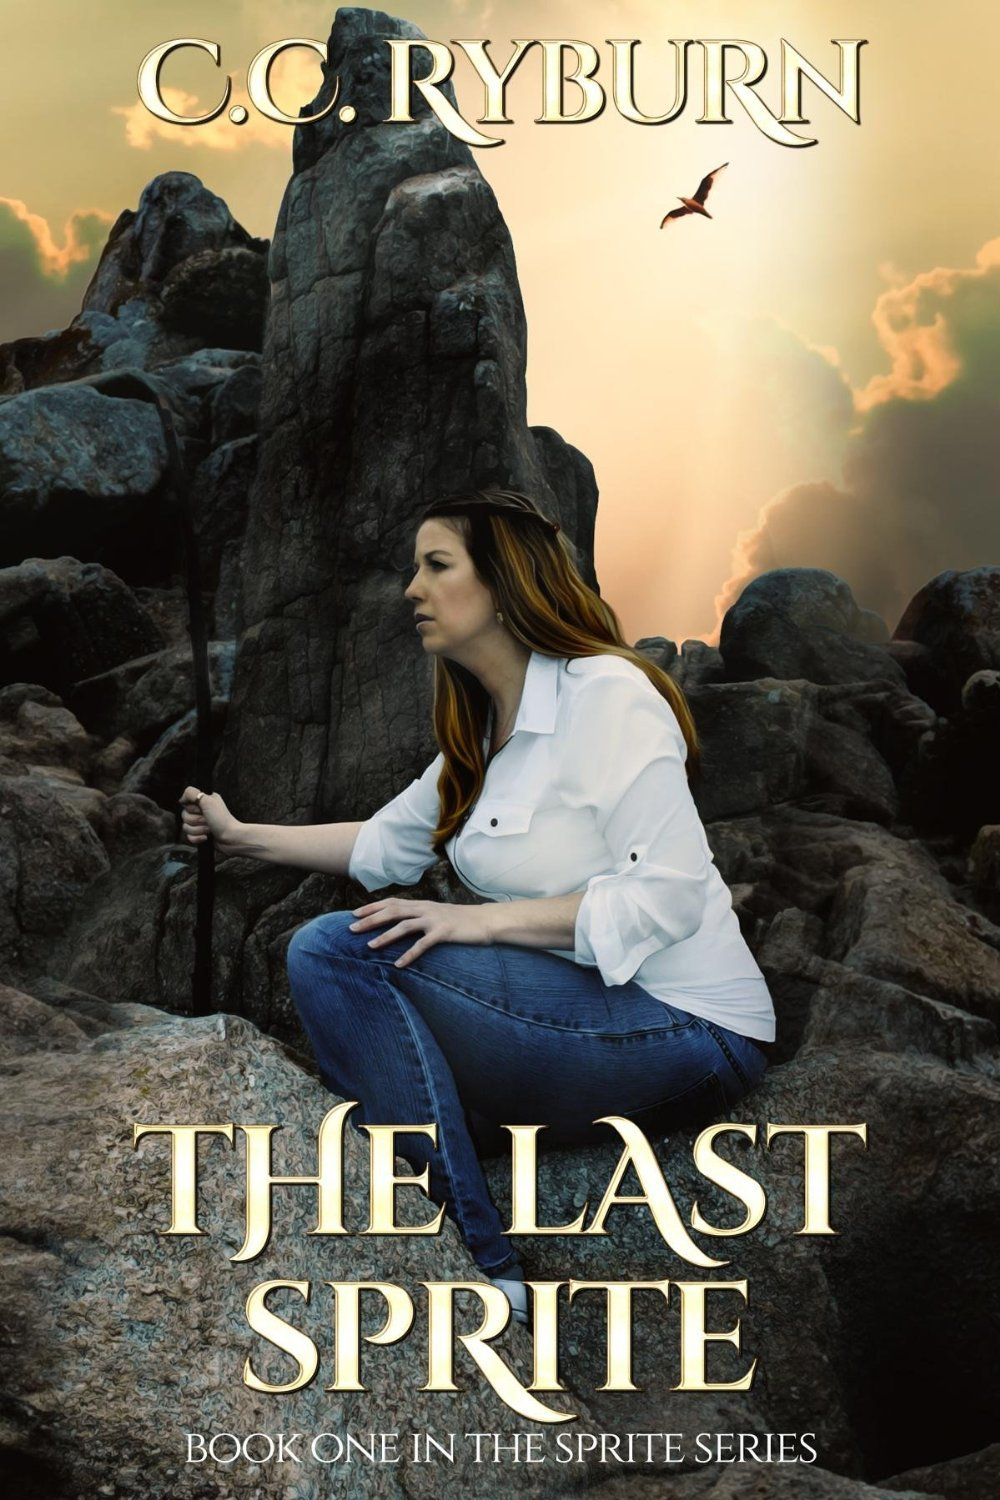 The Last Sprite: Book One of the Sprite Series C.C. Ryburn